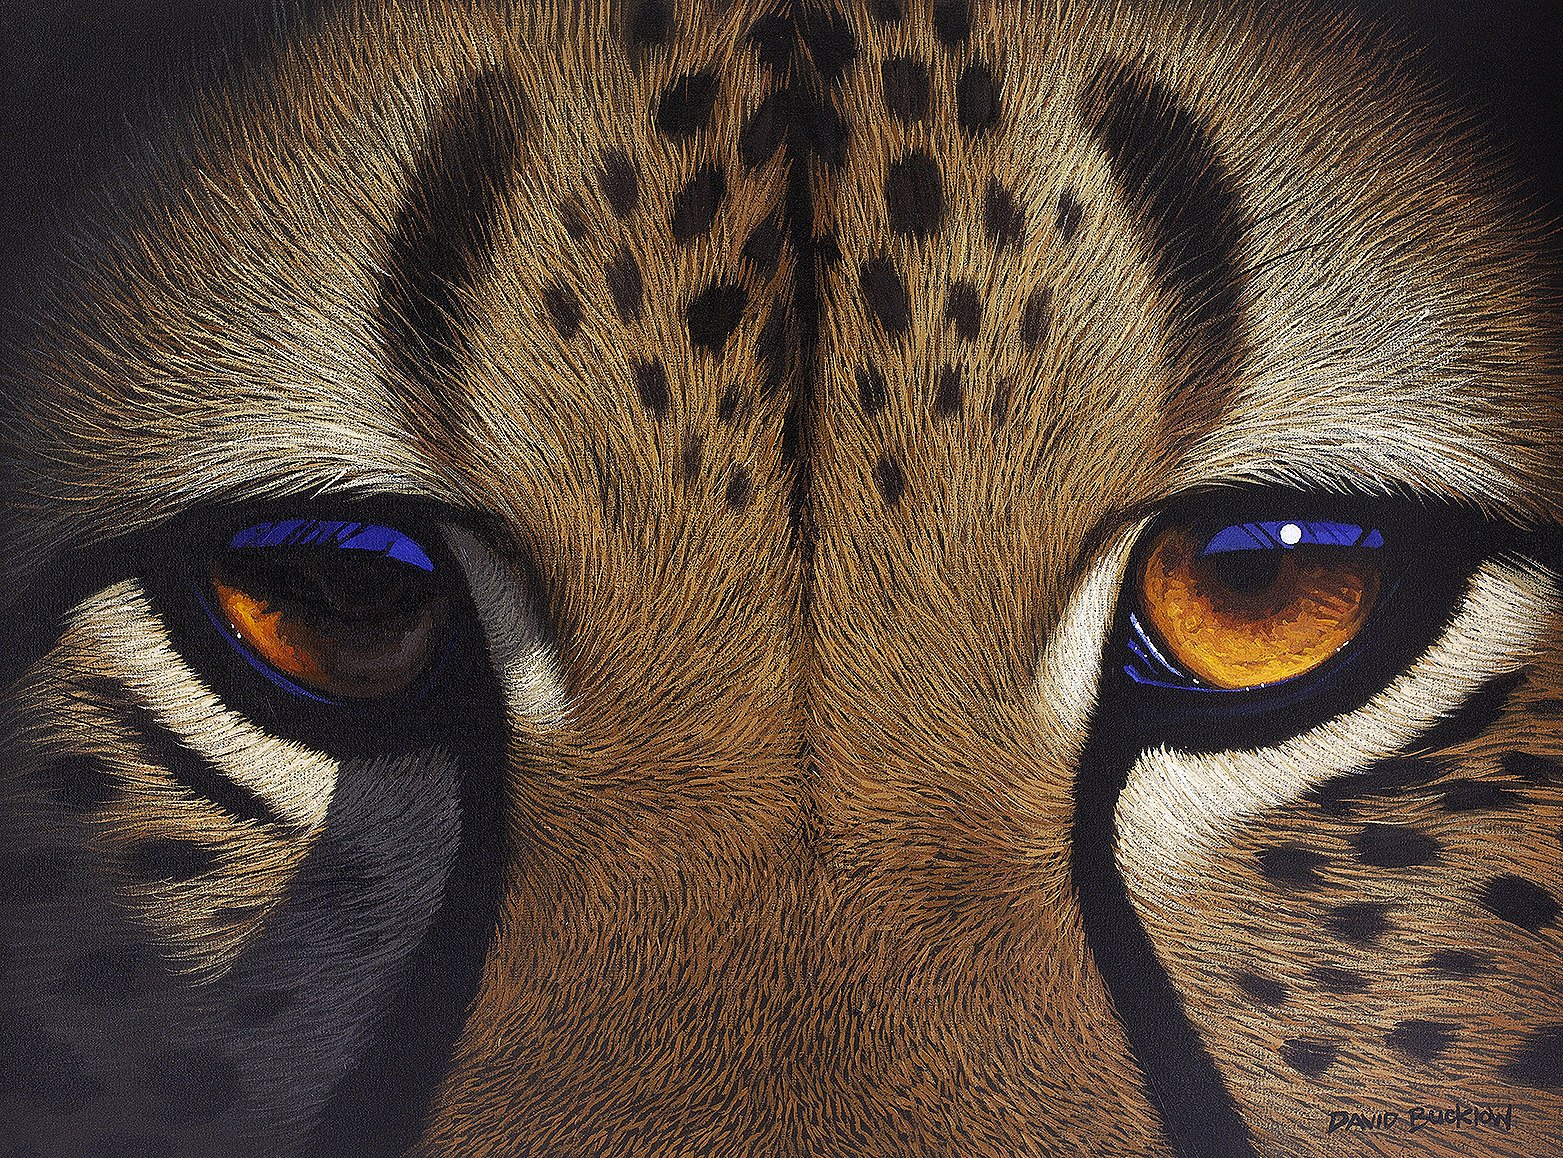 A fine art print of a cheetah's eyes up close painted by artist David Bucklow